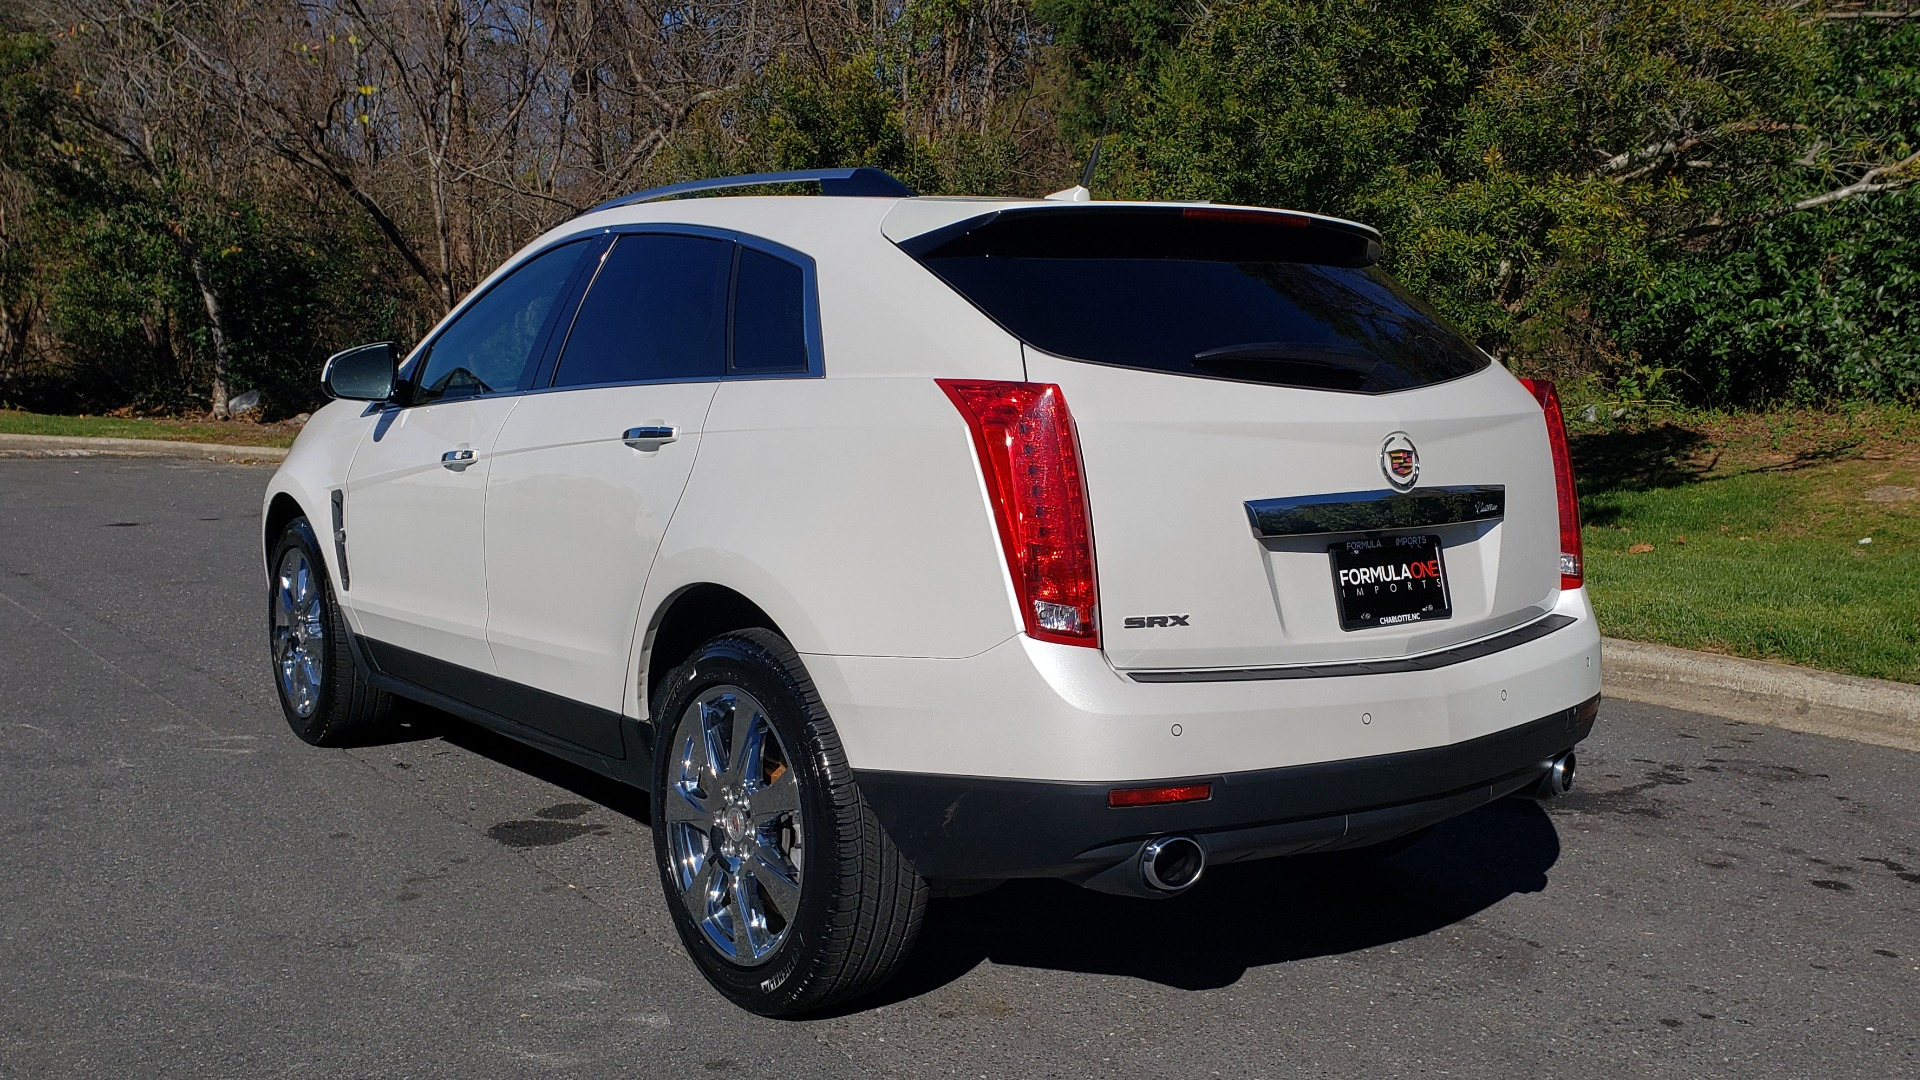 Used 2011 Cadillac SRX PERFORMANCE COLLECTION / ENT SYS / BOSE / REARVIEW for sale $15,999 at Formula Imports in Charlotte NC 28227 3